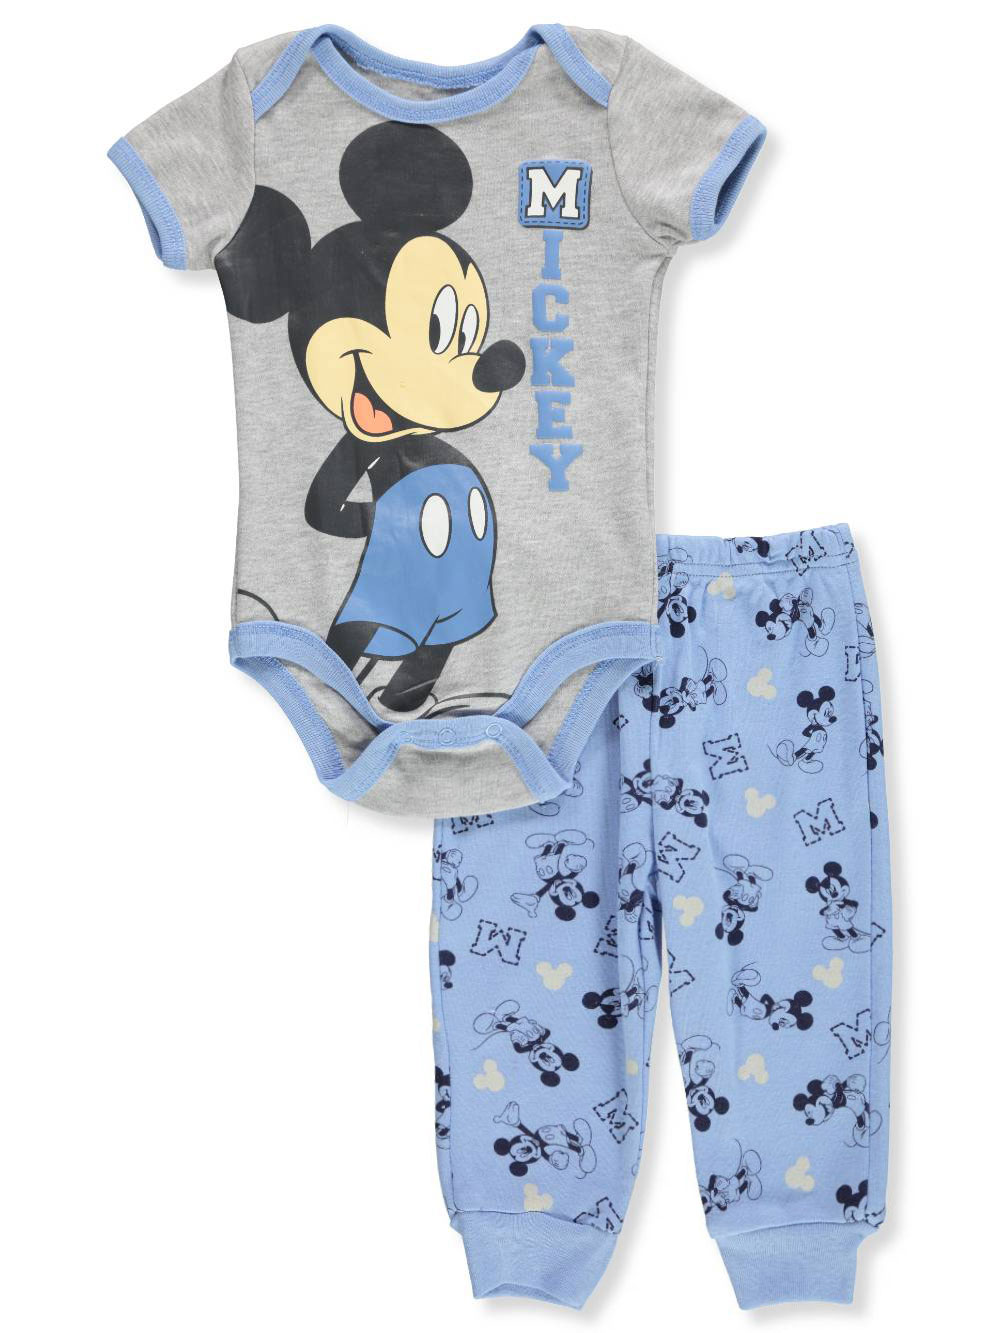 2019 Latest Design Baby Boy Disney Mickey Top And Joggers Set 3-6 Months Outfits & Sets Boys' Clothing (newborn-5t)